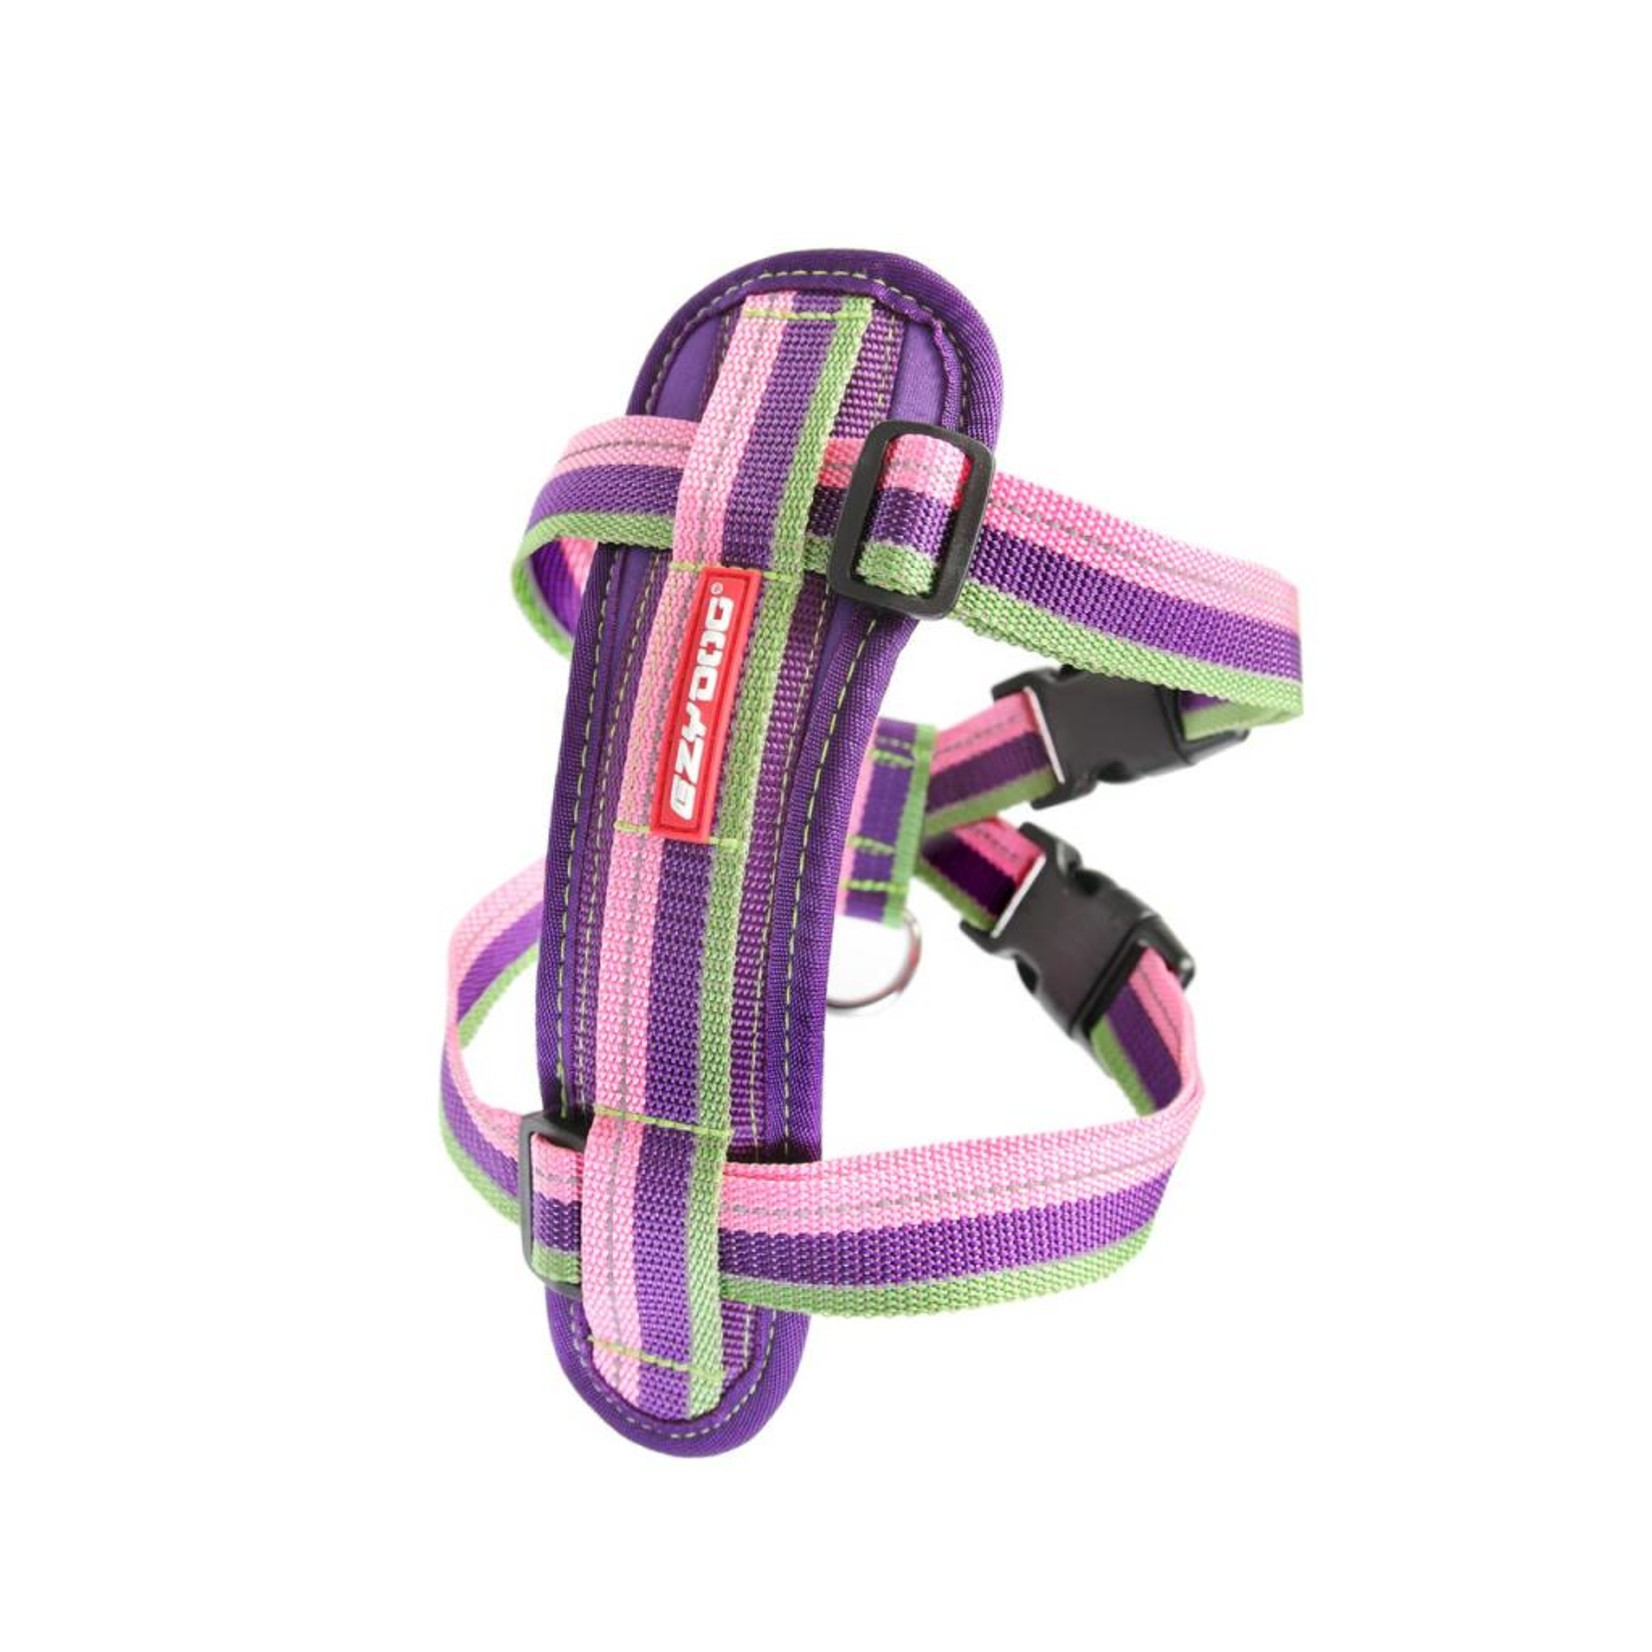 EzyDog Chest Plate Dog Harness with Seat Belt Loop, Bubble Gum